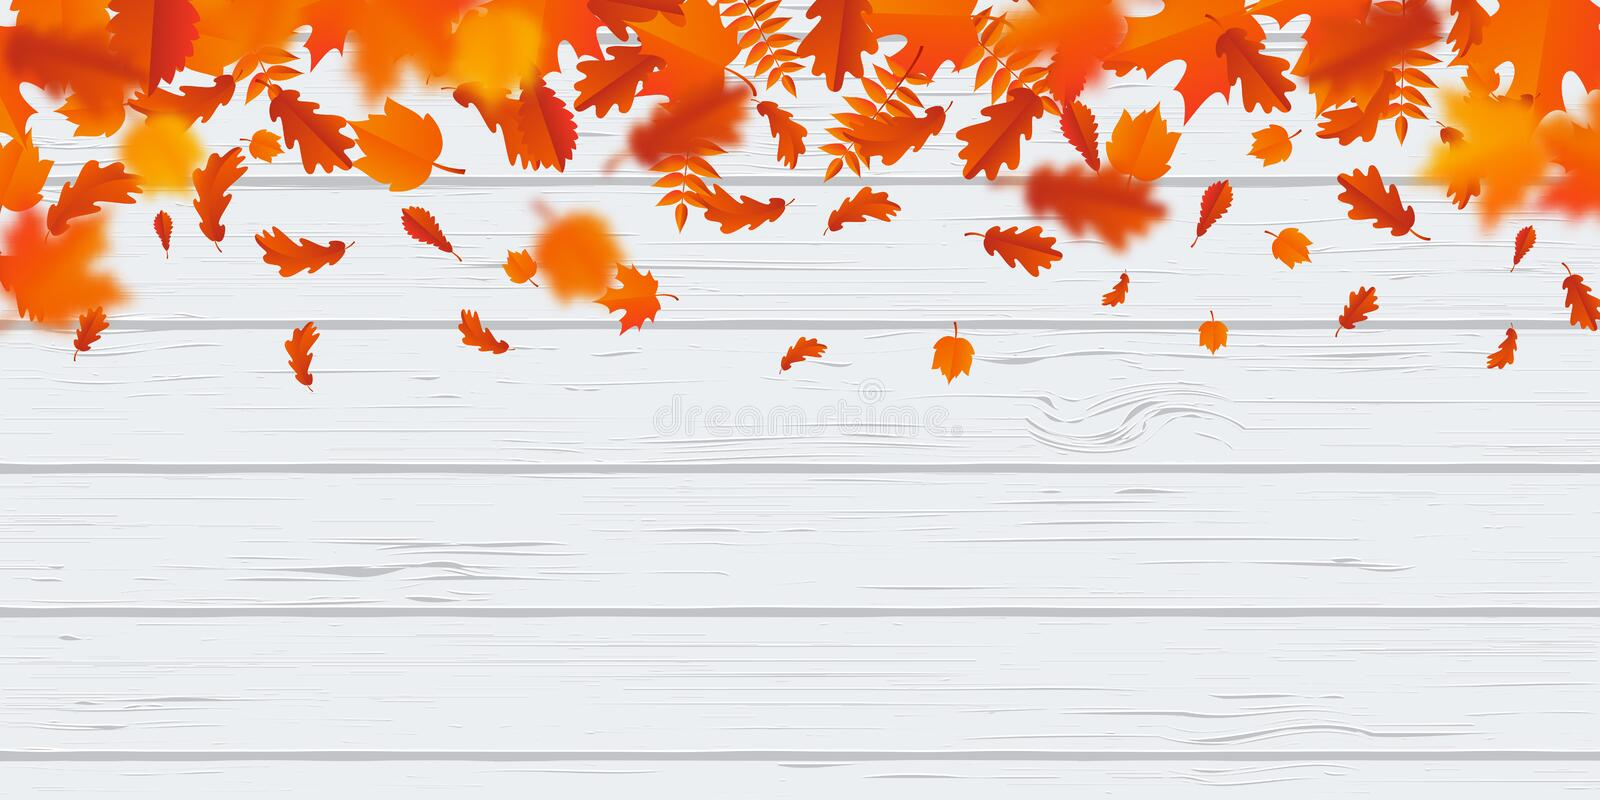 Autumn leaf fall foliage pattern autumanl falling leaves on vector wooden background. Autumn leaf fall or autumnal falling leaves on white wooden background royalty free illustration